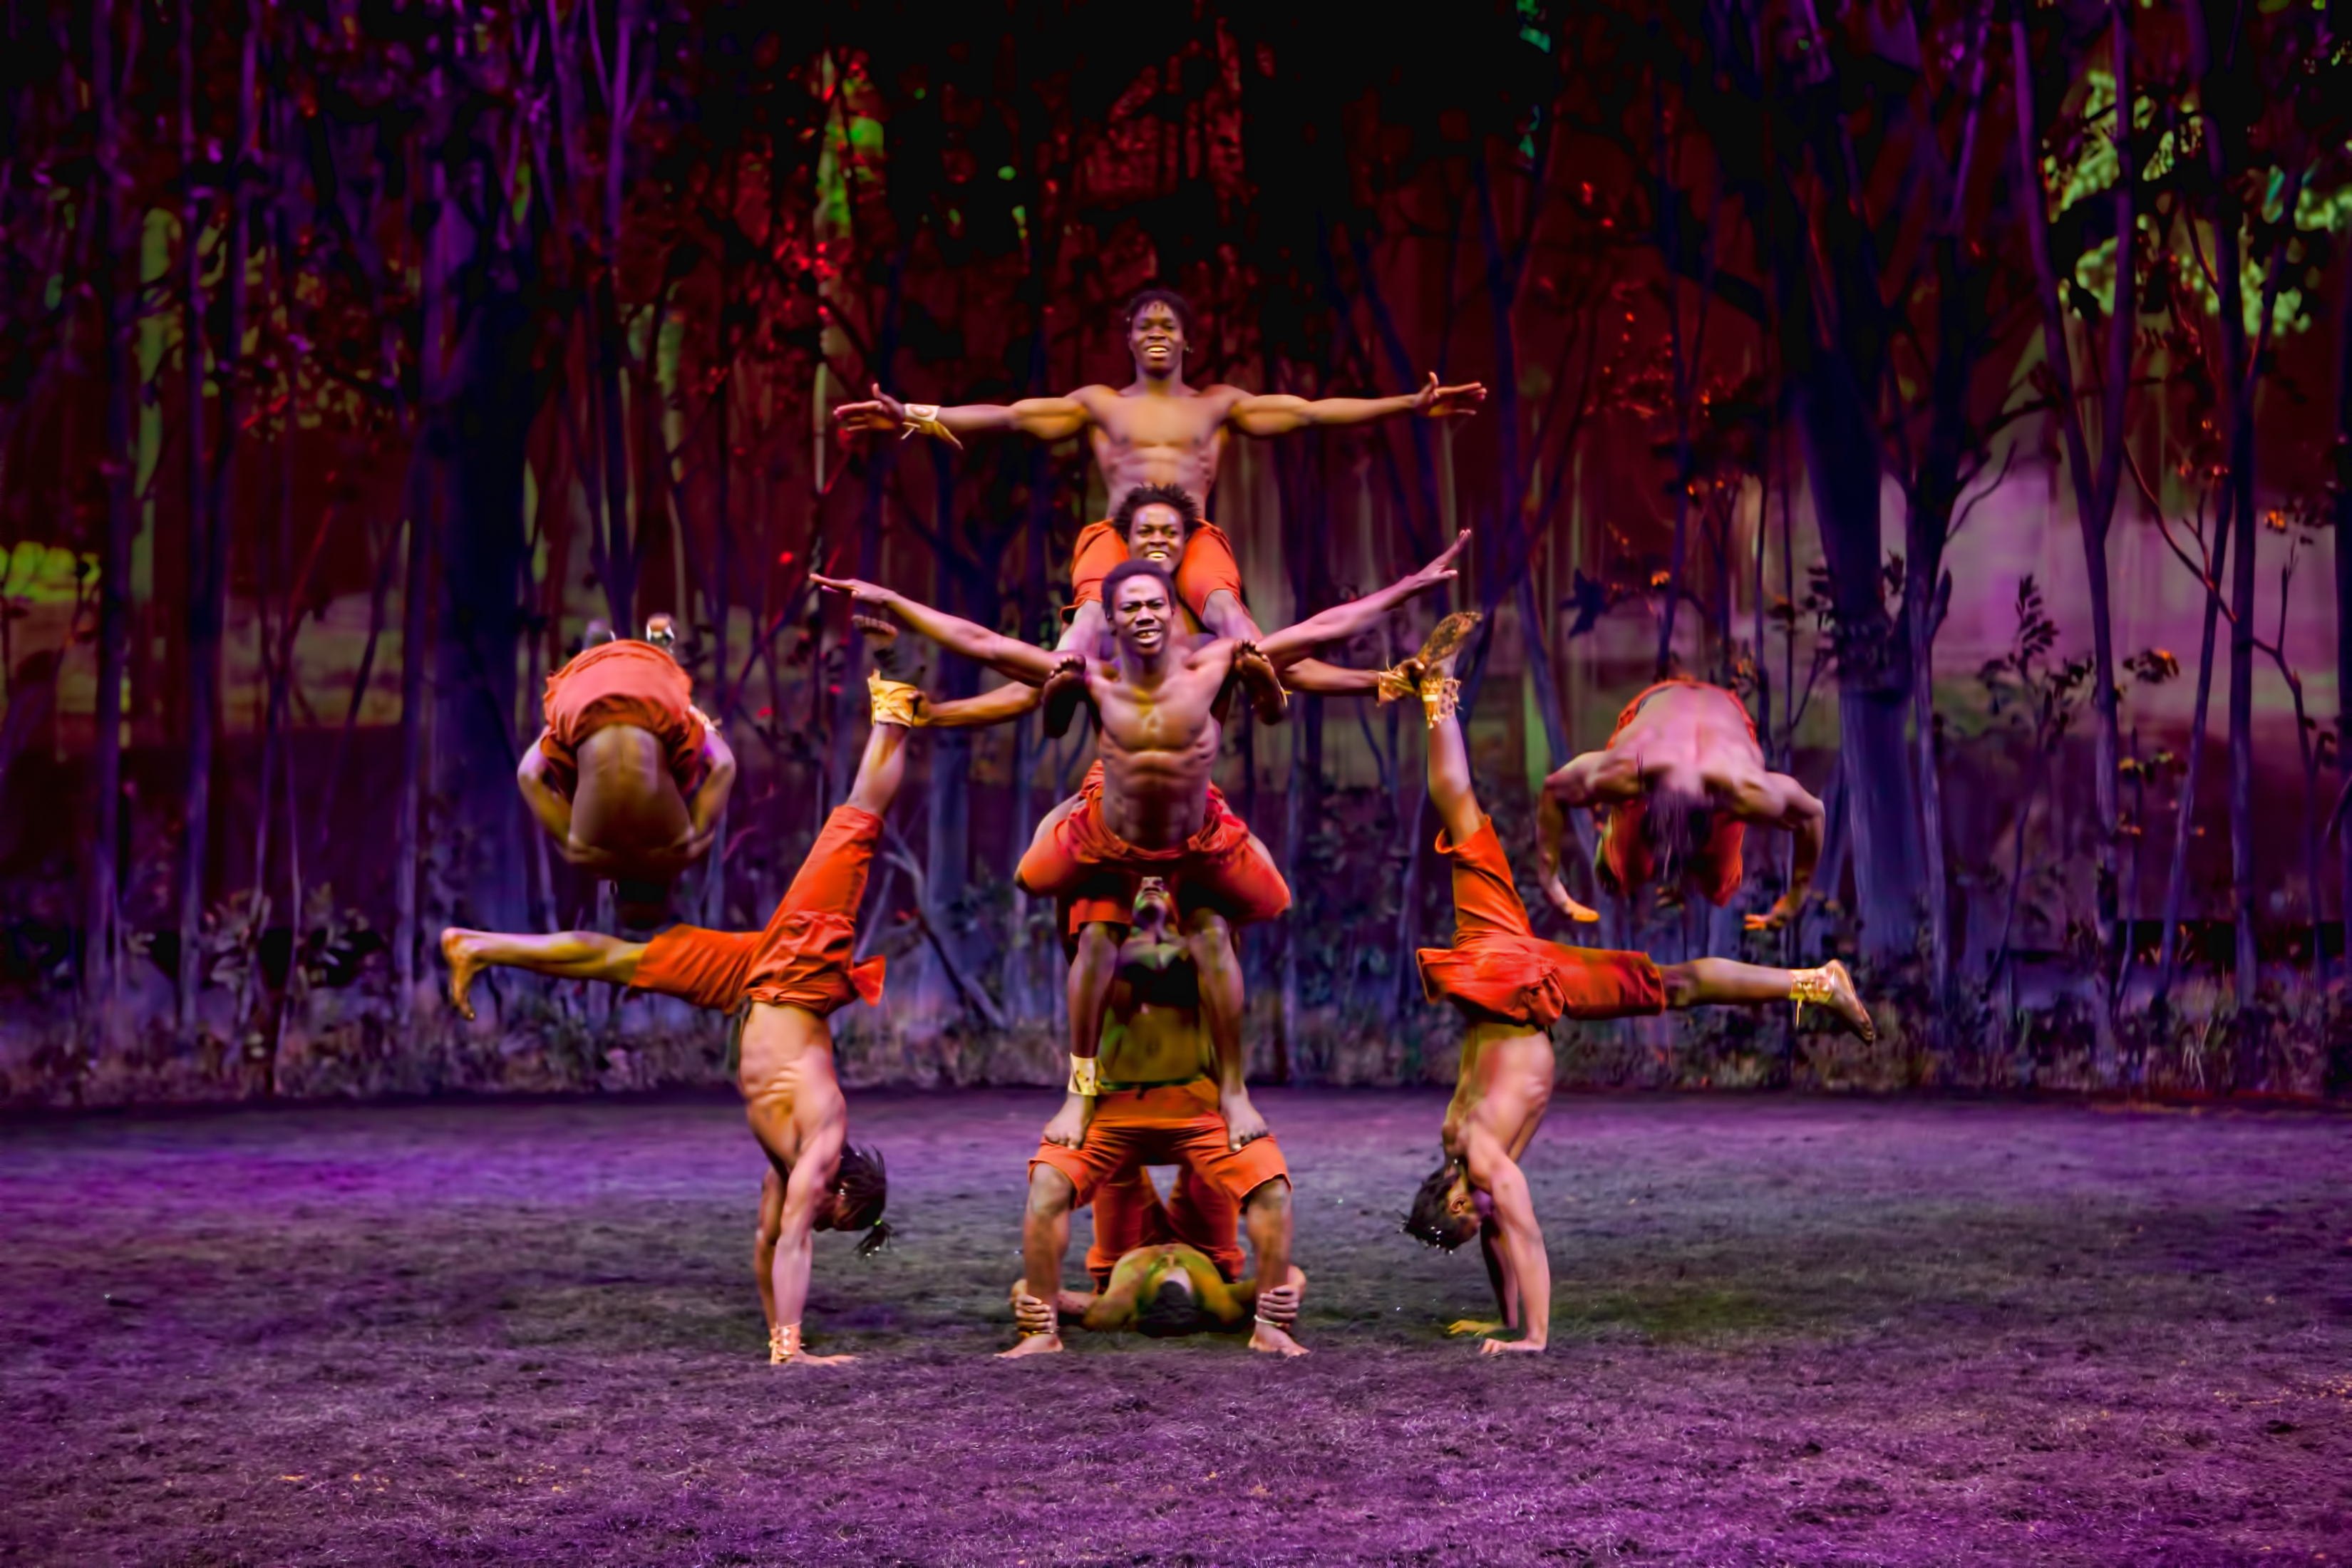 Buy UniverSoul Circus tickets and find UniverSoul Circus schedule, dates, seating charts and information on funnebux.gq Buy cheap UniverSoul Circus tickets online and get premium Circus seats to live UniverSoul Circus events.